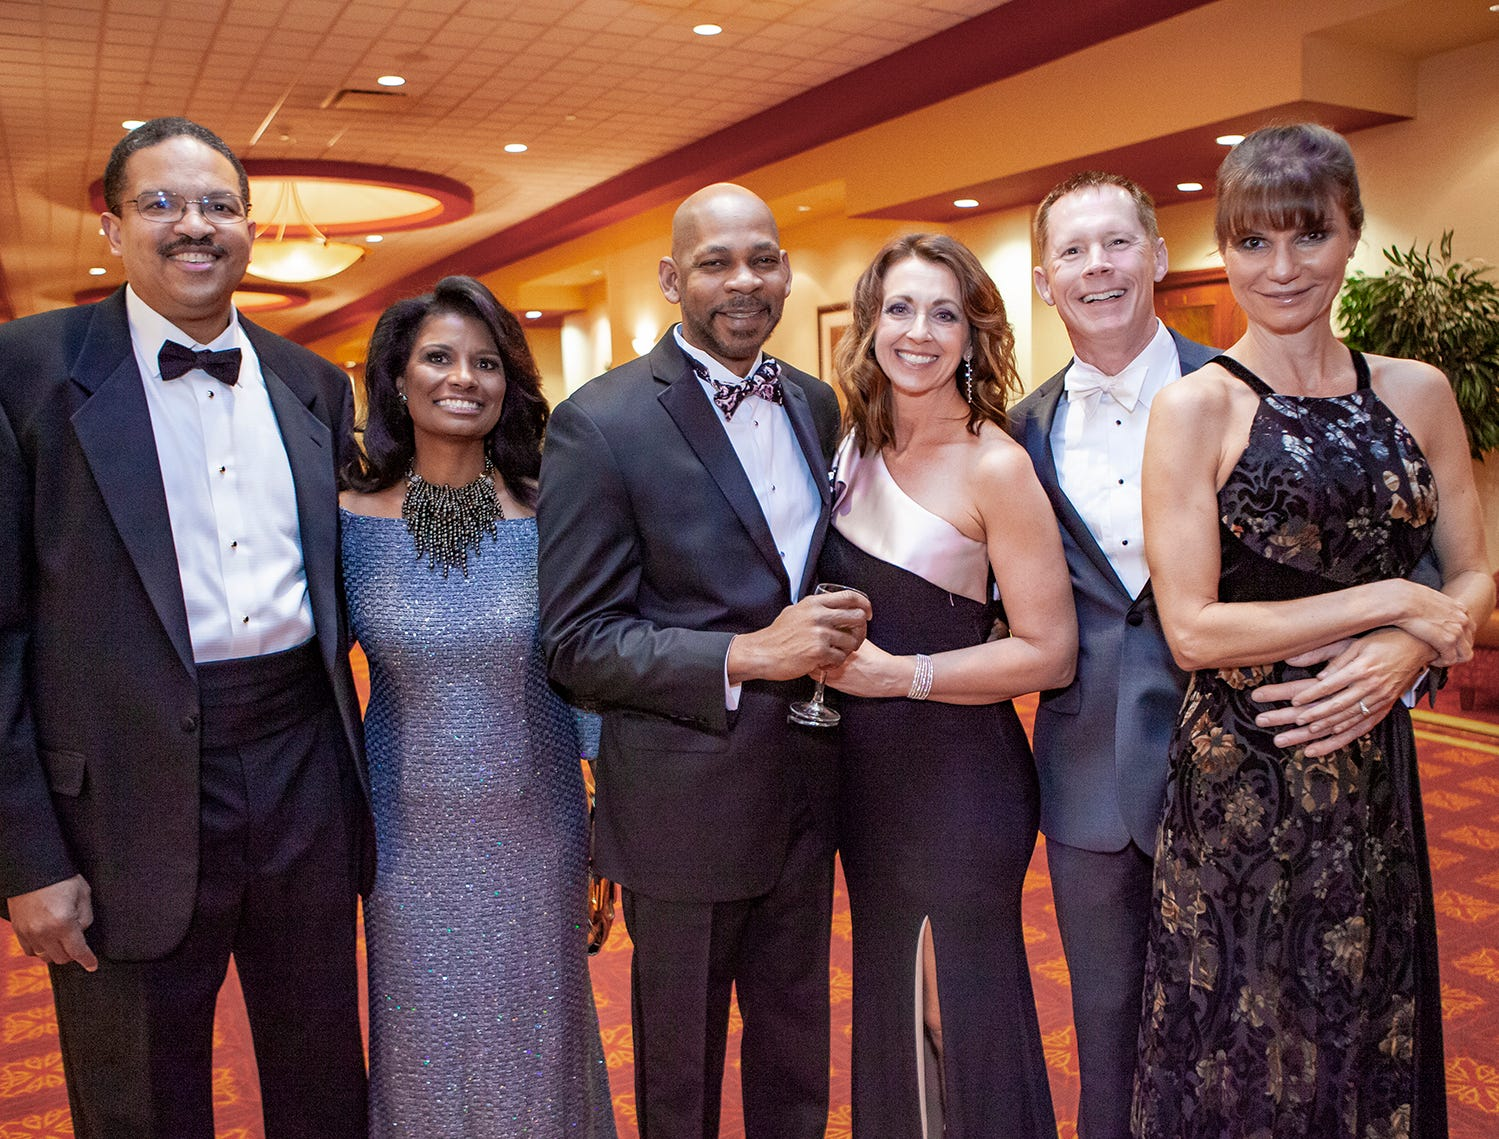 Kevin Billups, Tracy Hardy, Ken Mitchell, Christie Condra, and Mary and Greg Sample at the 2019 Saint Thomas Rutherford Foundation Gala on Saturday, Jan. 19, 2019 at Embassy Suites Murfreesboro.